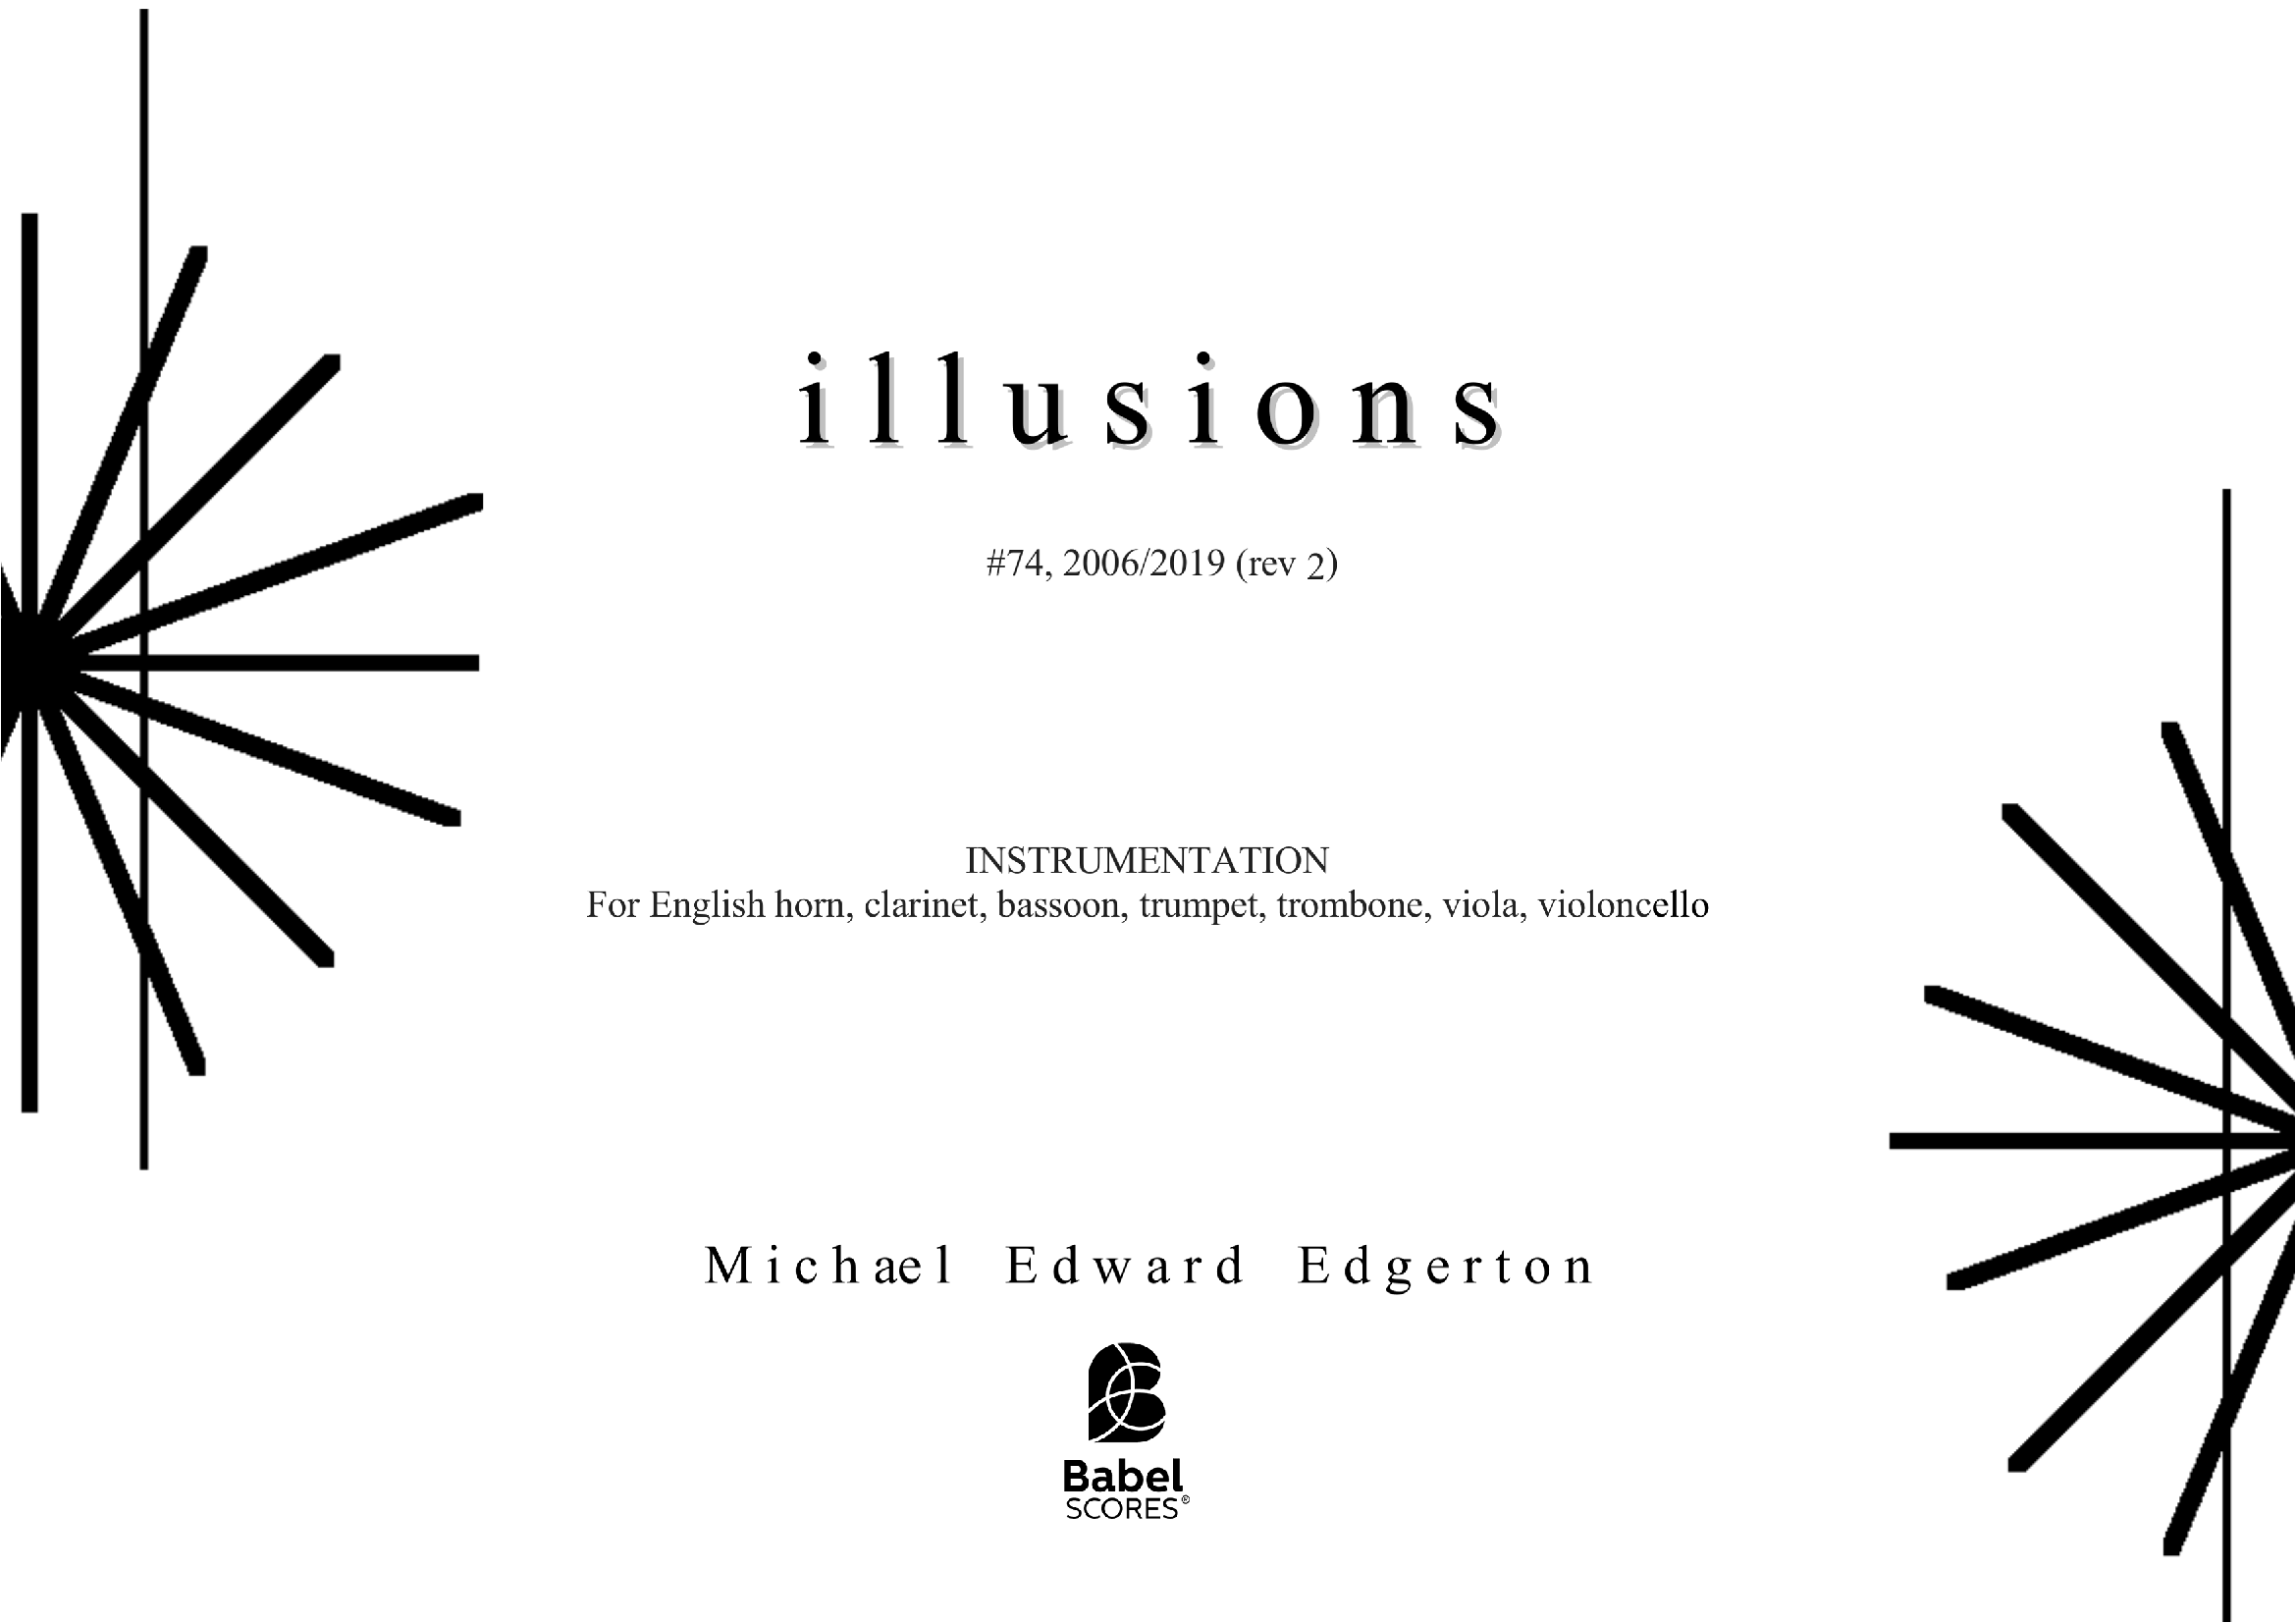 74_illusions edgerton_Z